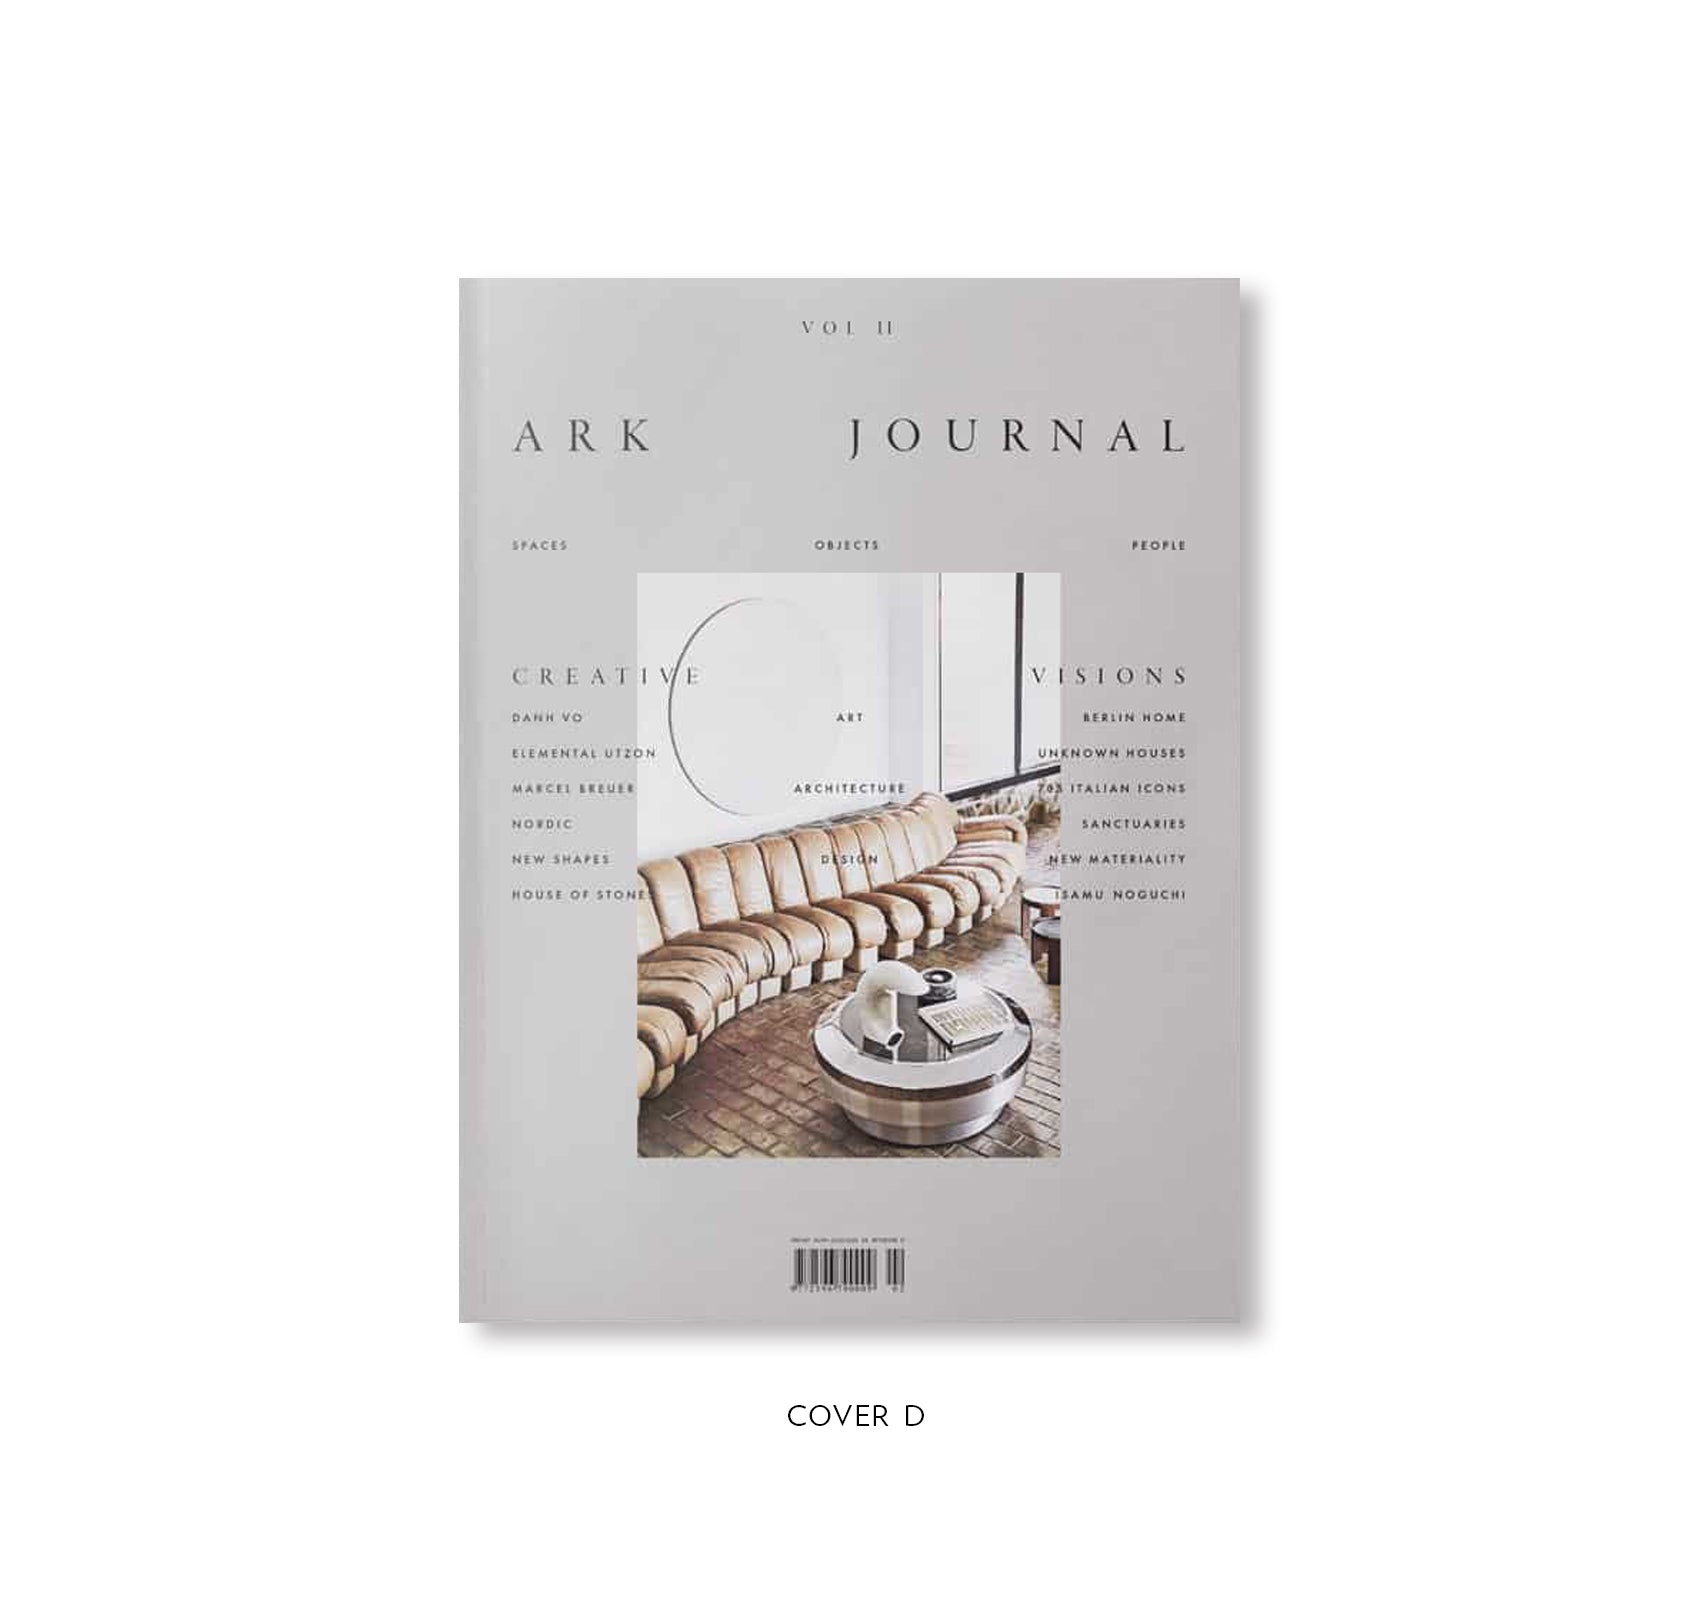 ARK JOURNAL VOLUME II AUTUMN/WINTER 2019